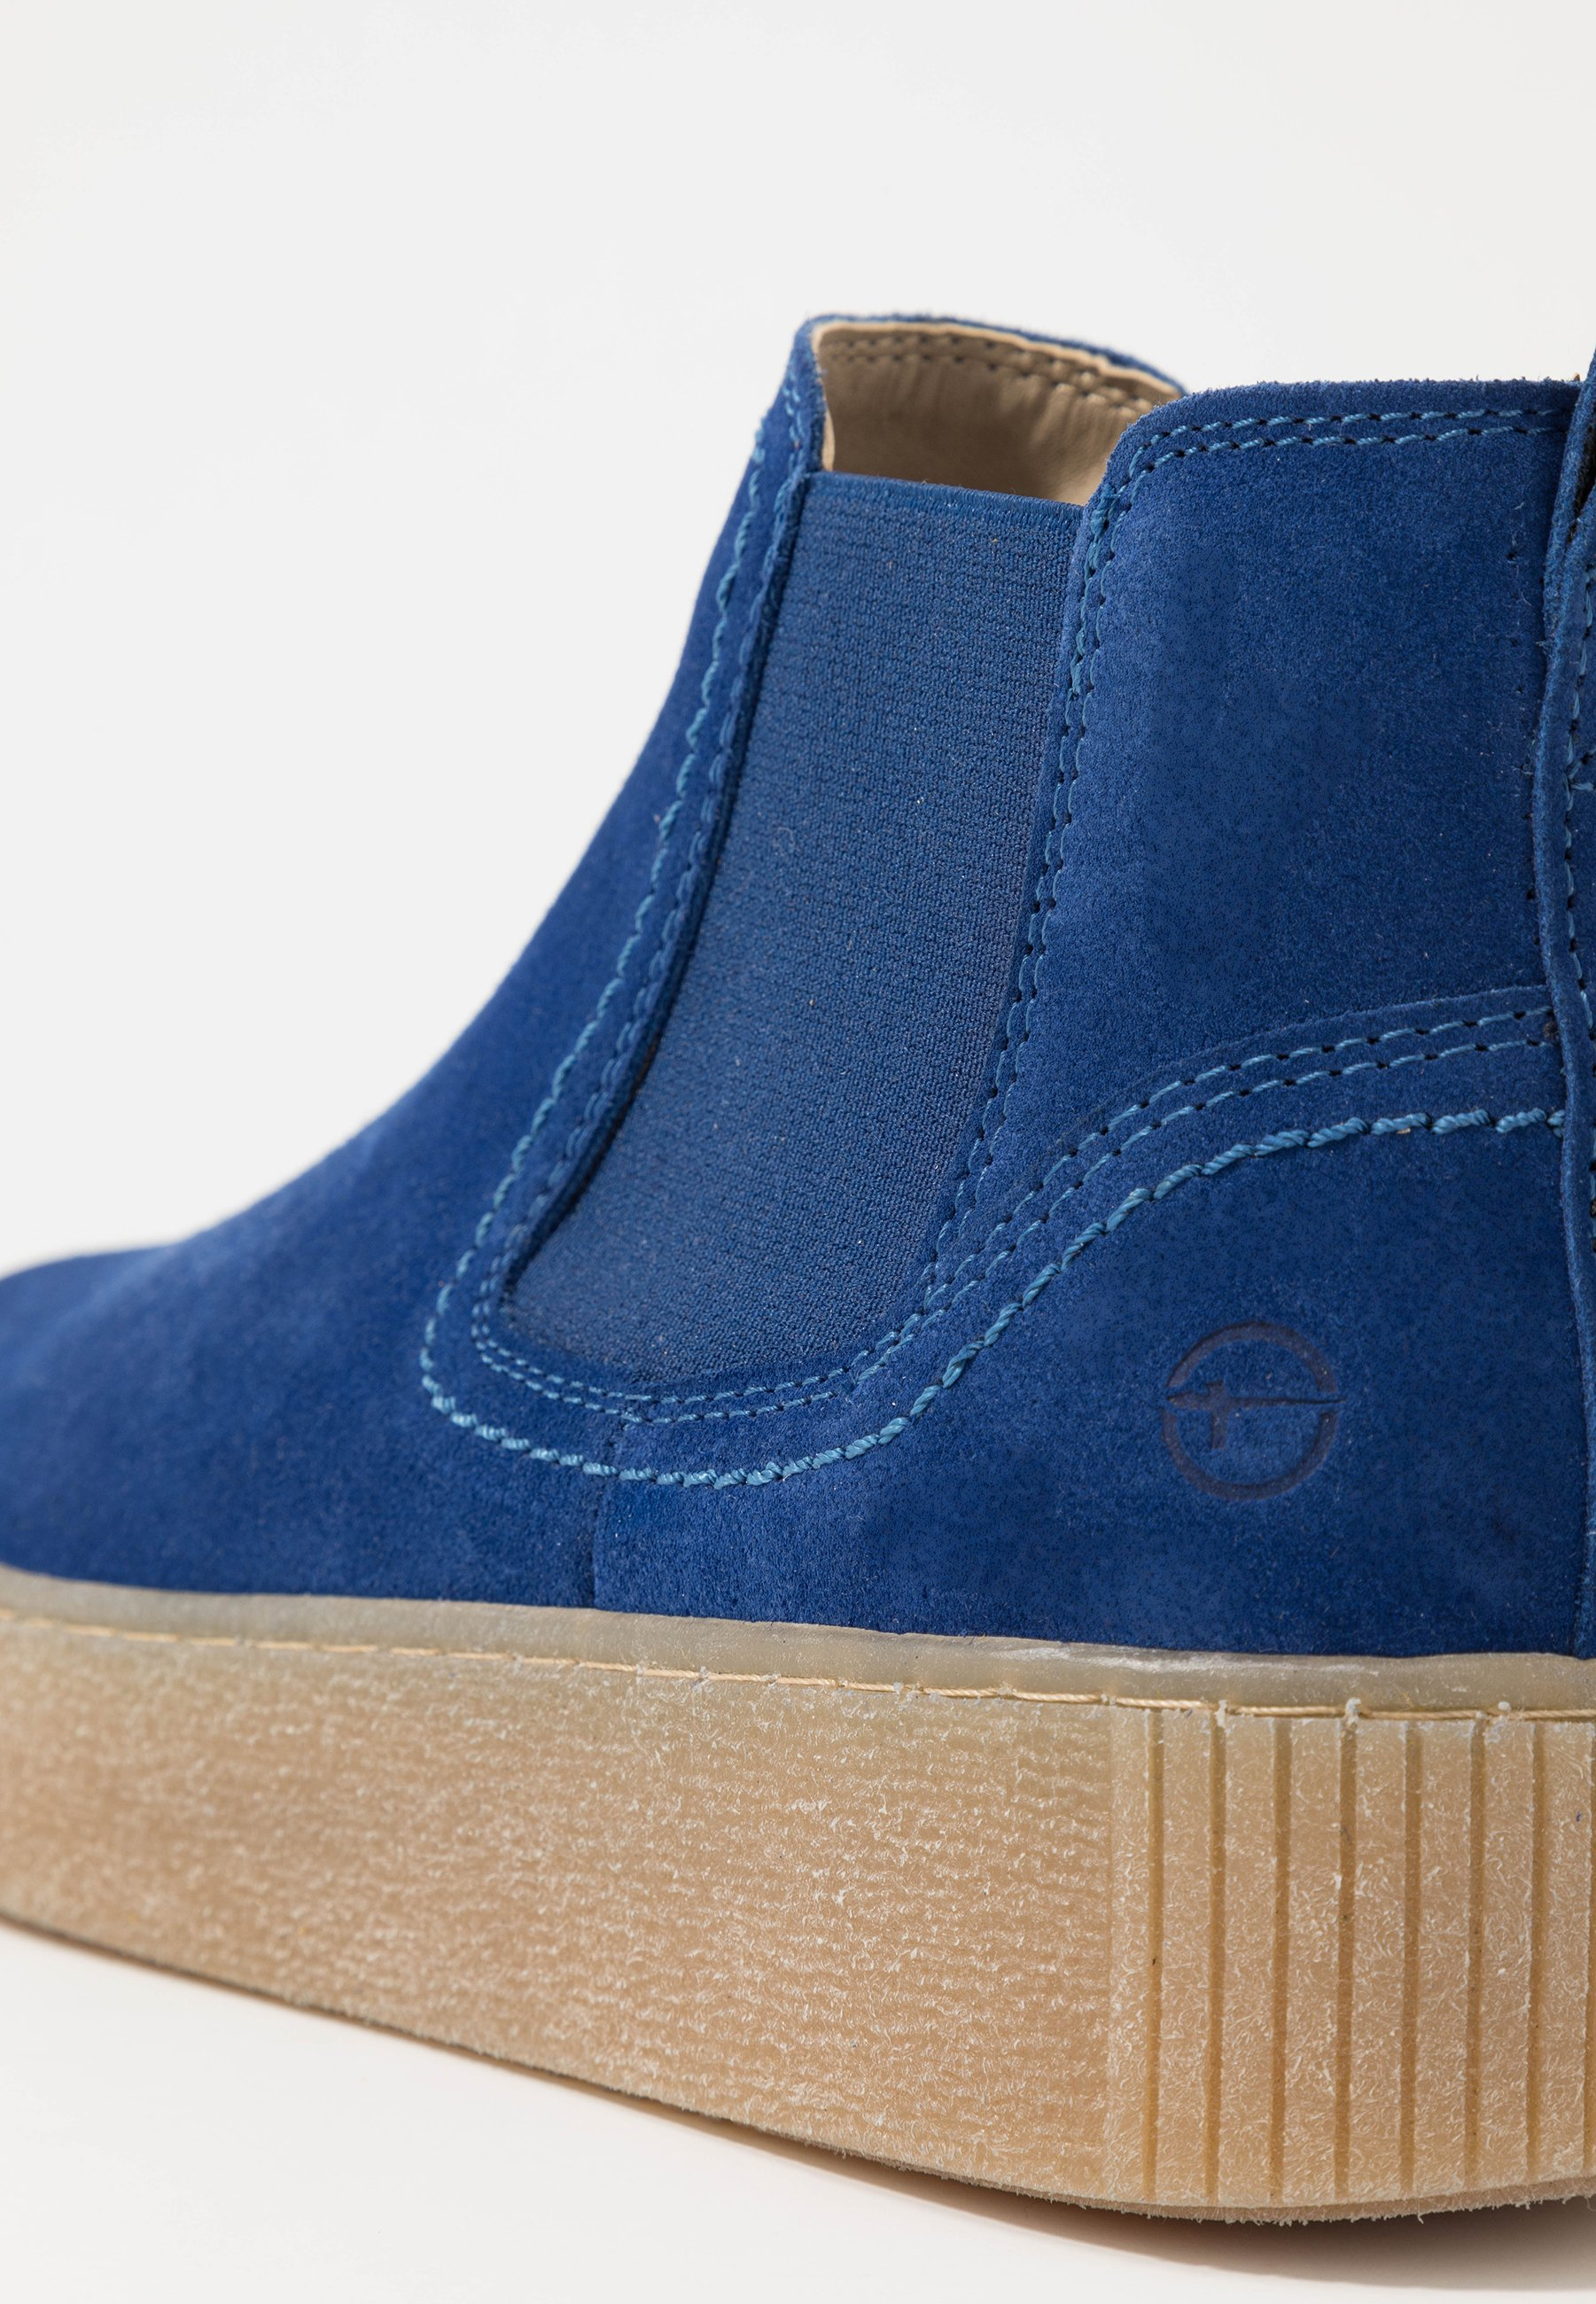 Tamaris Ankle Boot sapphire/royal